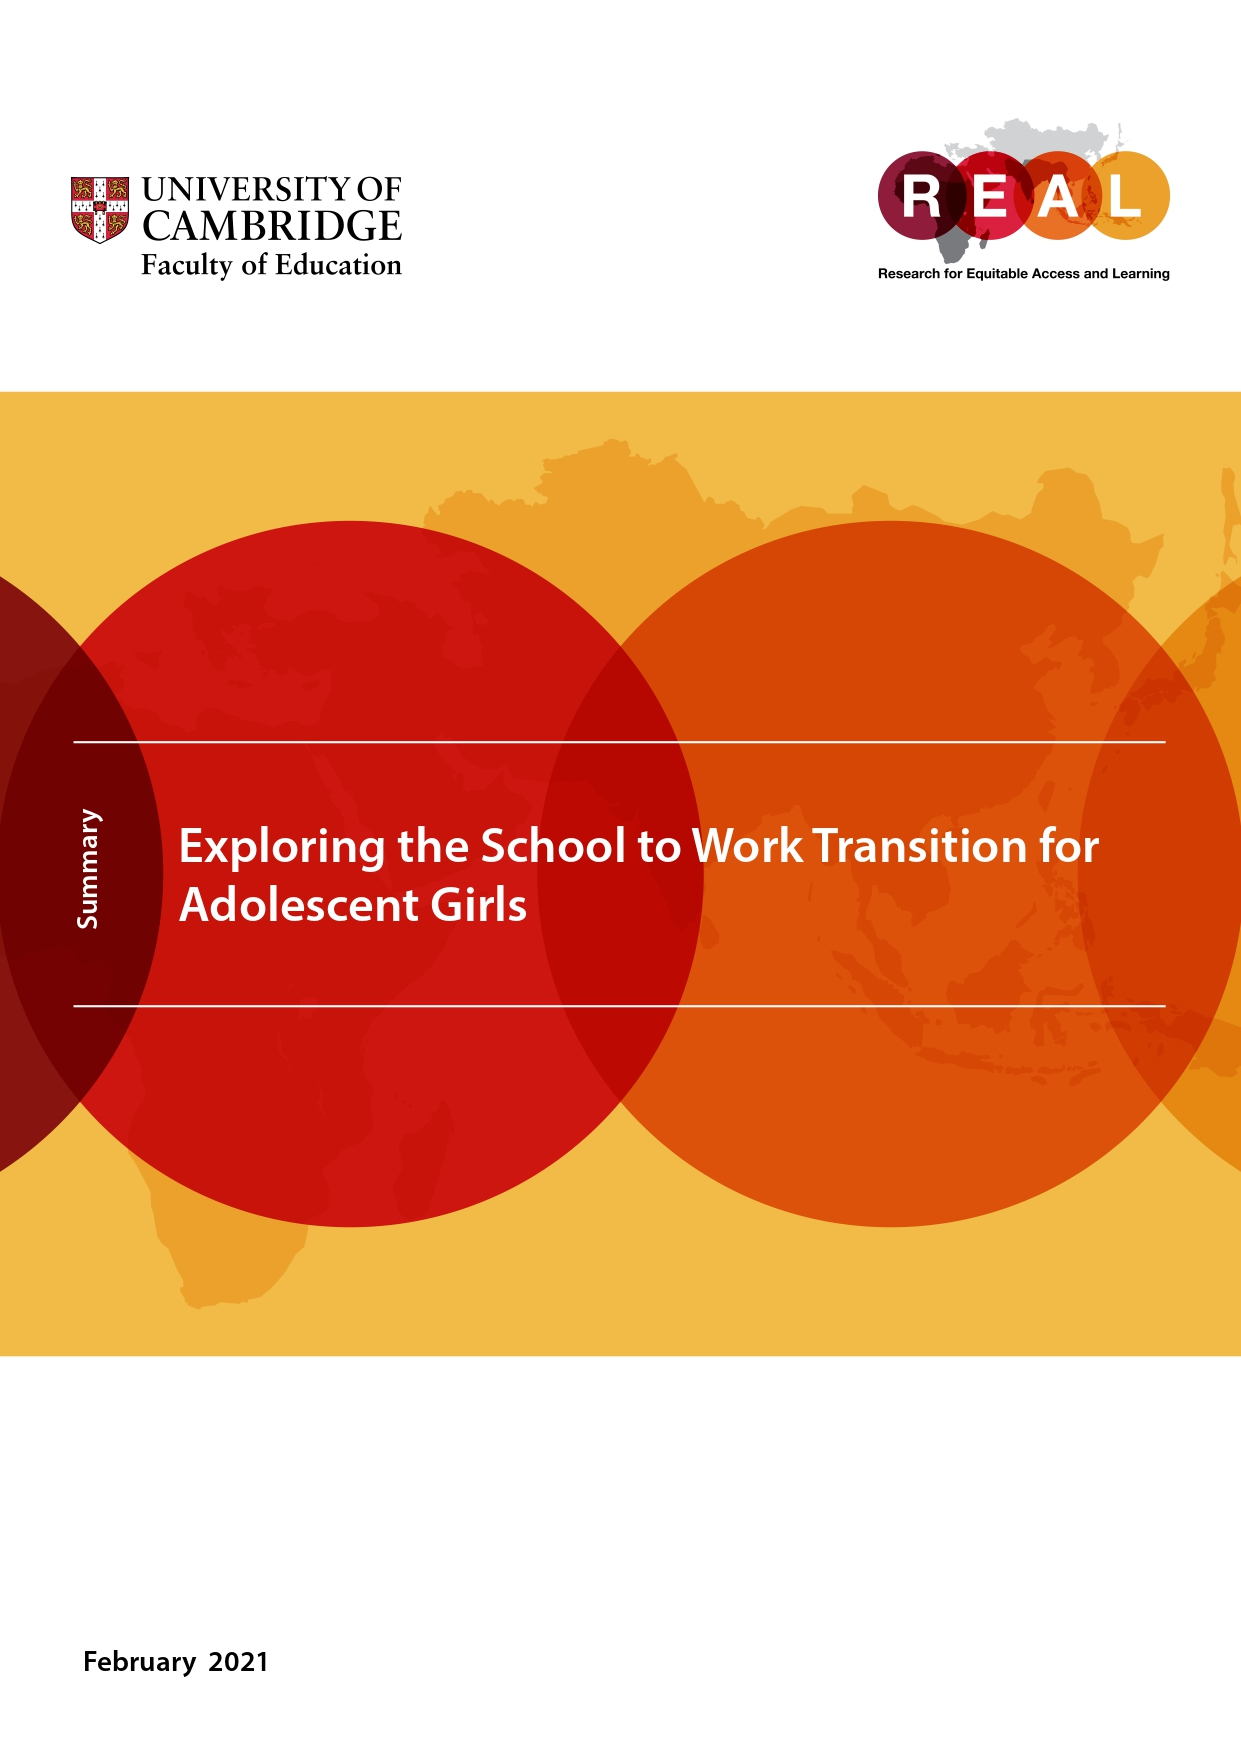 Exploring the School to Work Transition for Adolescent Girls